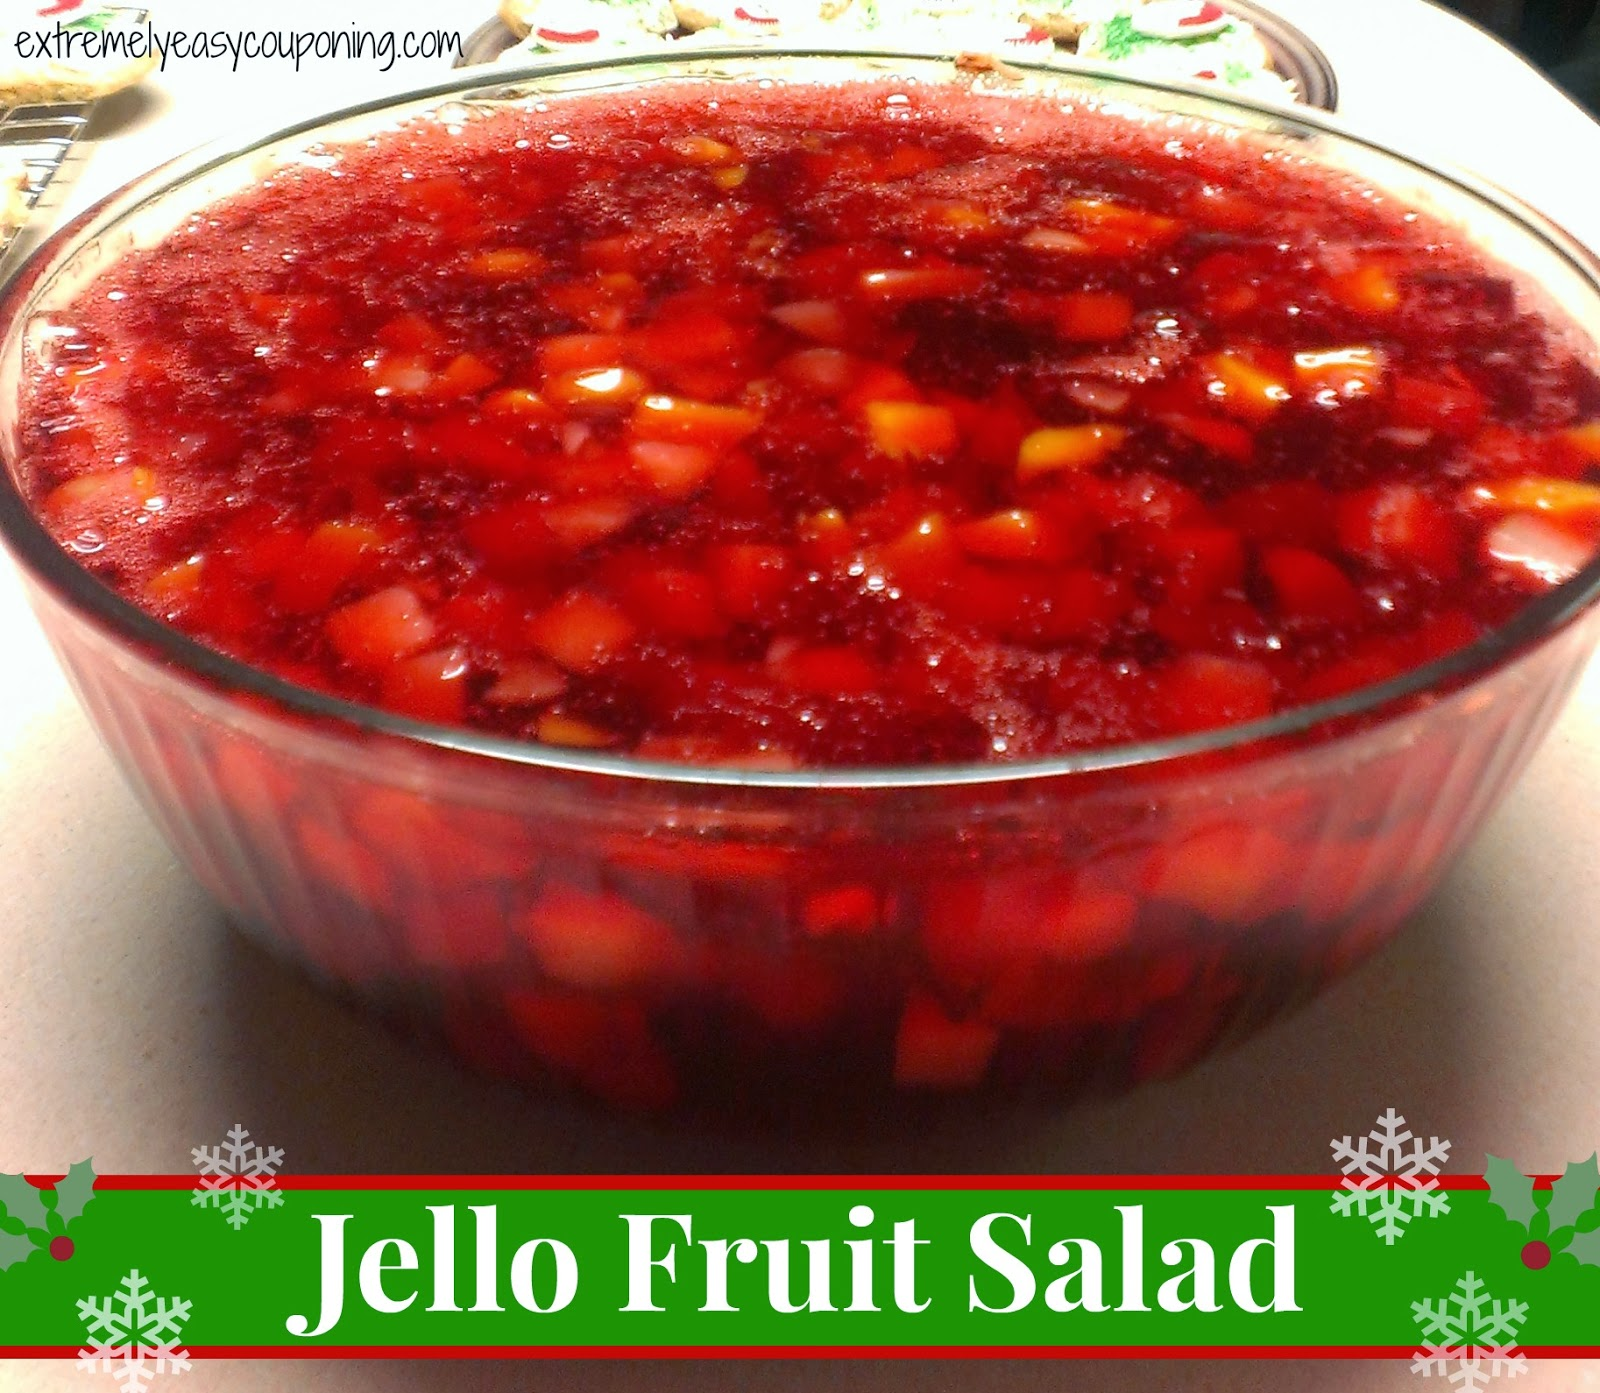 Extremely Easy Couponing: Jello Fruit Salad Recipe